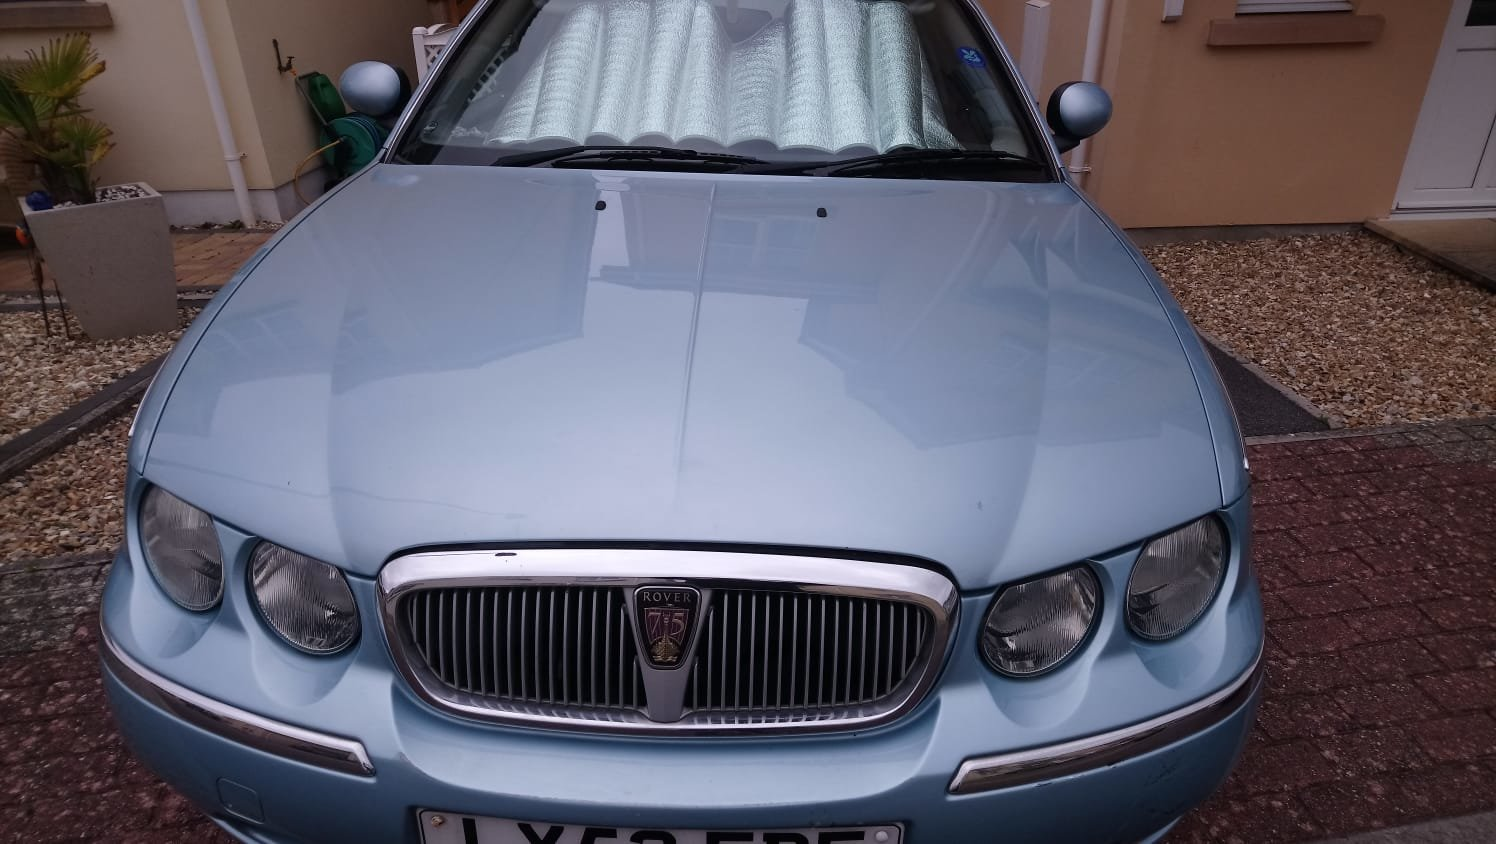 2002 Very well looked after Rover 75 For Sale (picture 1 of 6)